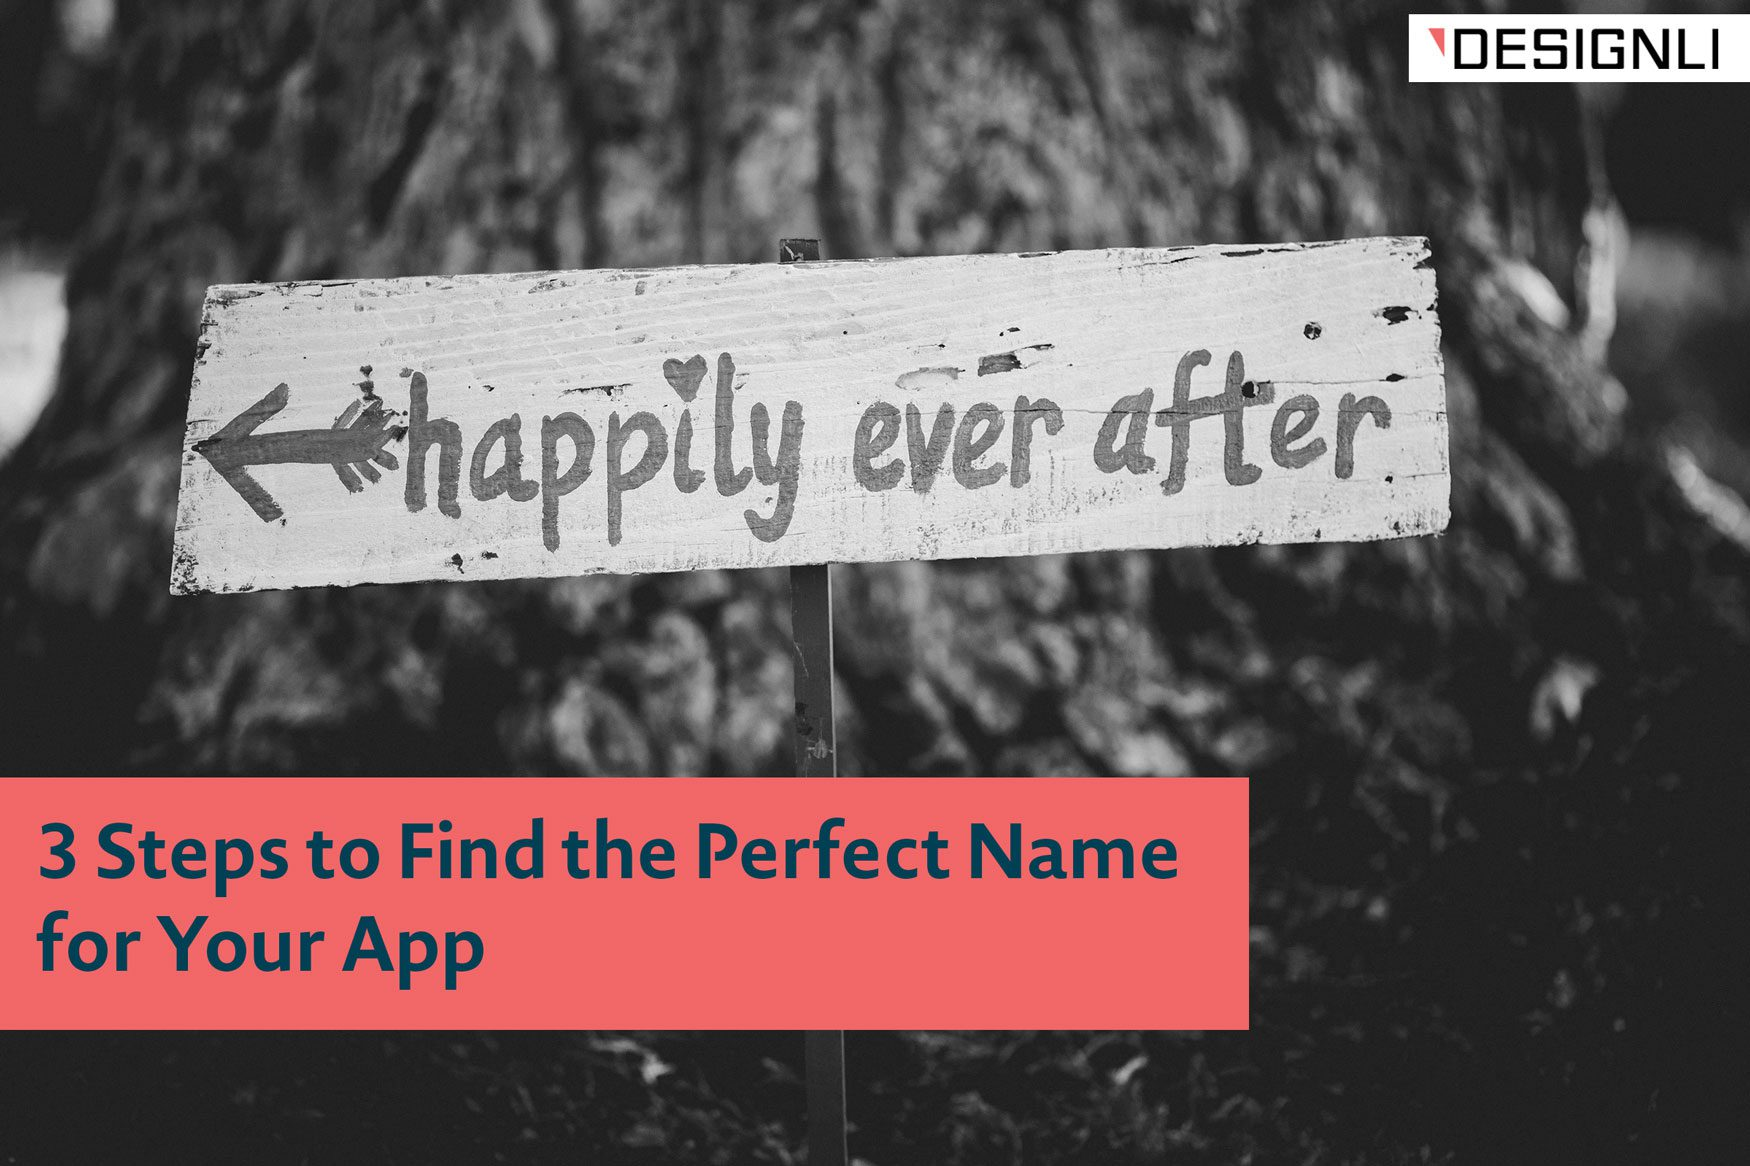 Find the Perfect Name for Your App